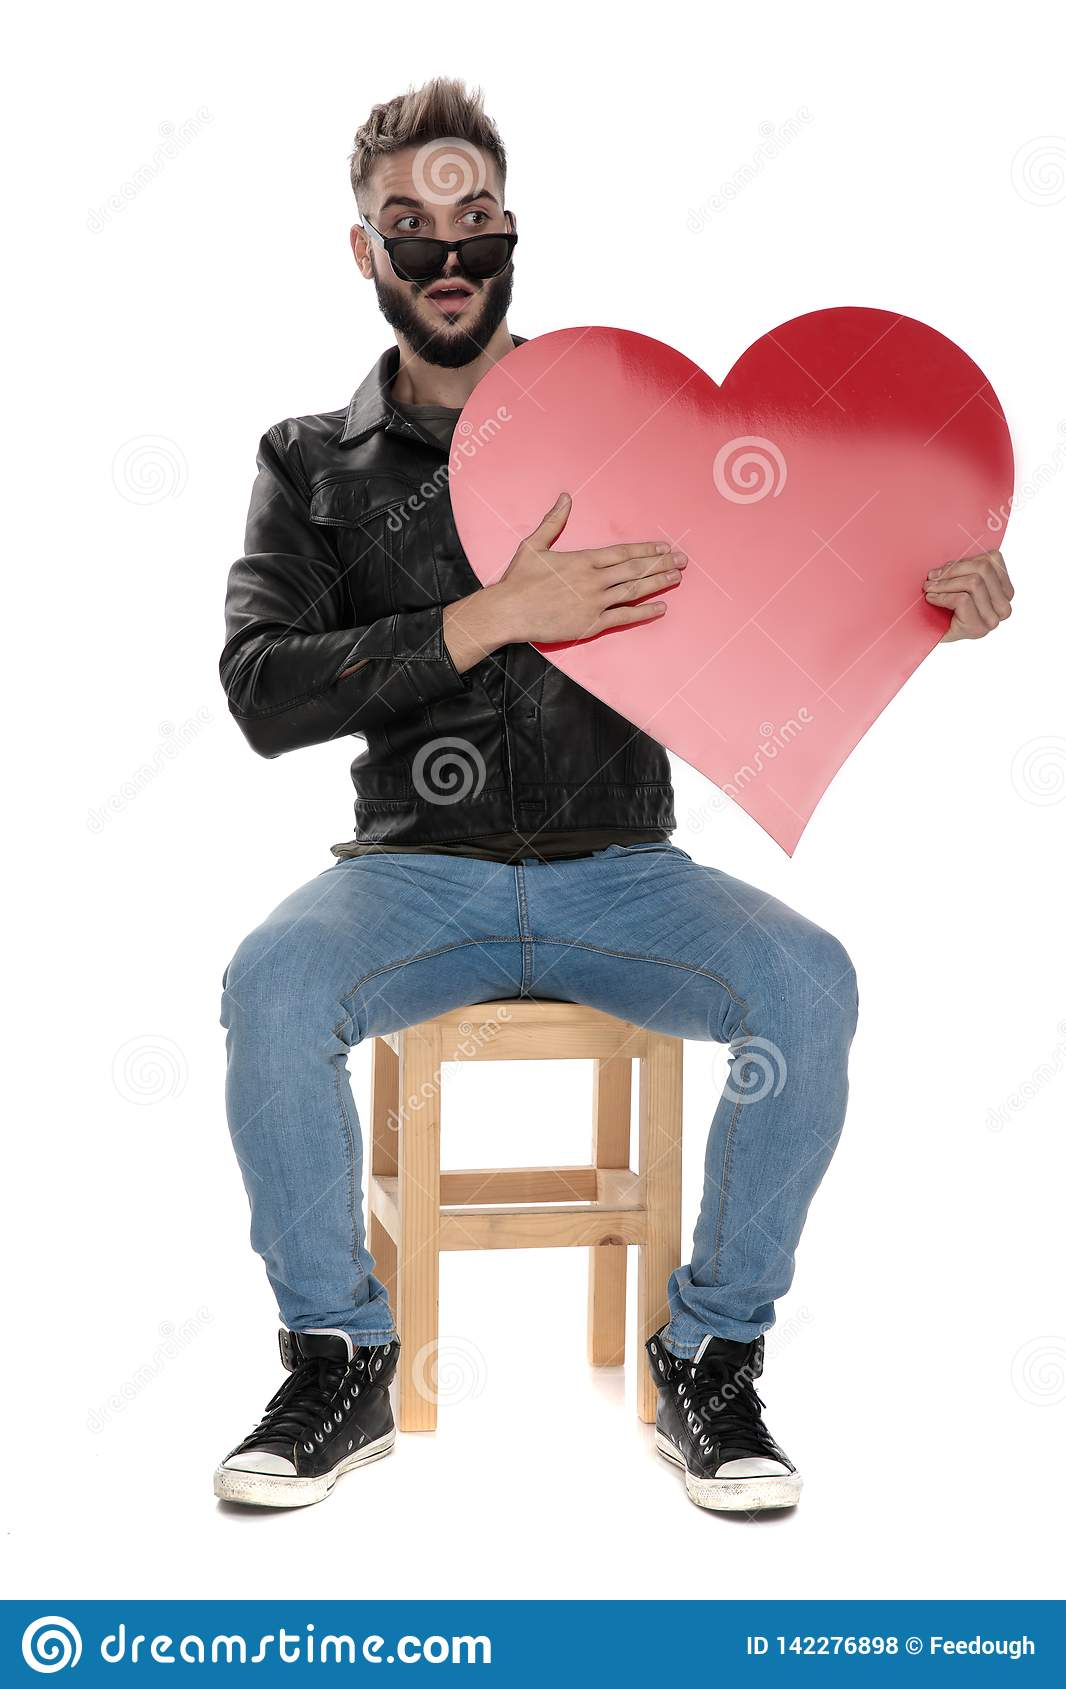 Man holding a red heart on hand while looking amazed